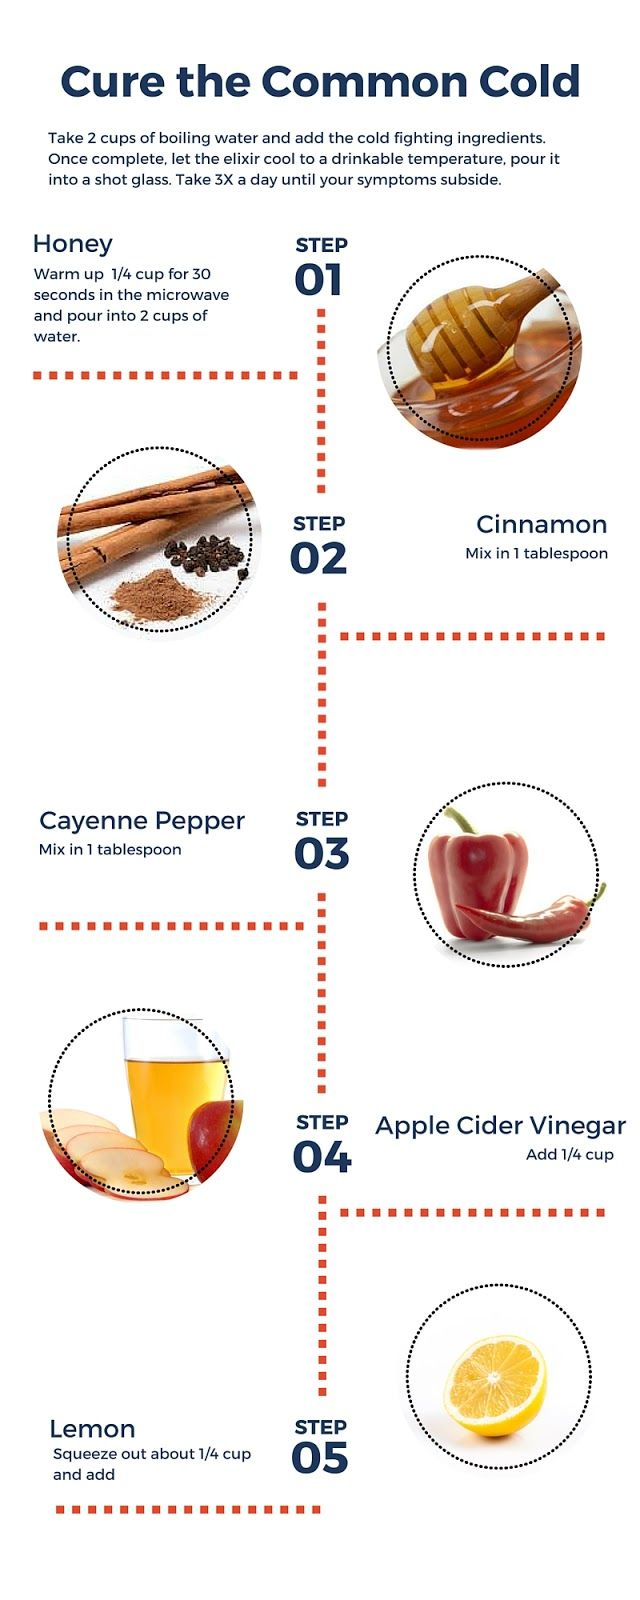 Best 25 cold remedies ideas on pinterest natural cold remedies best 25 cold remedies ideas on pinterest natural cold remedies homemade cold remedies and flu remedies ccuart Image collections